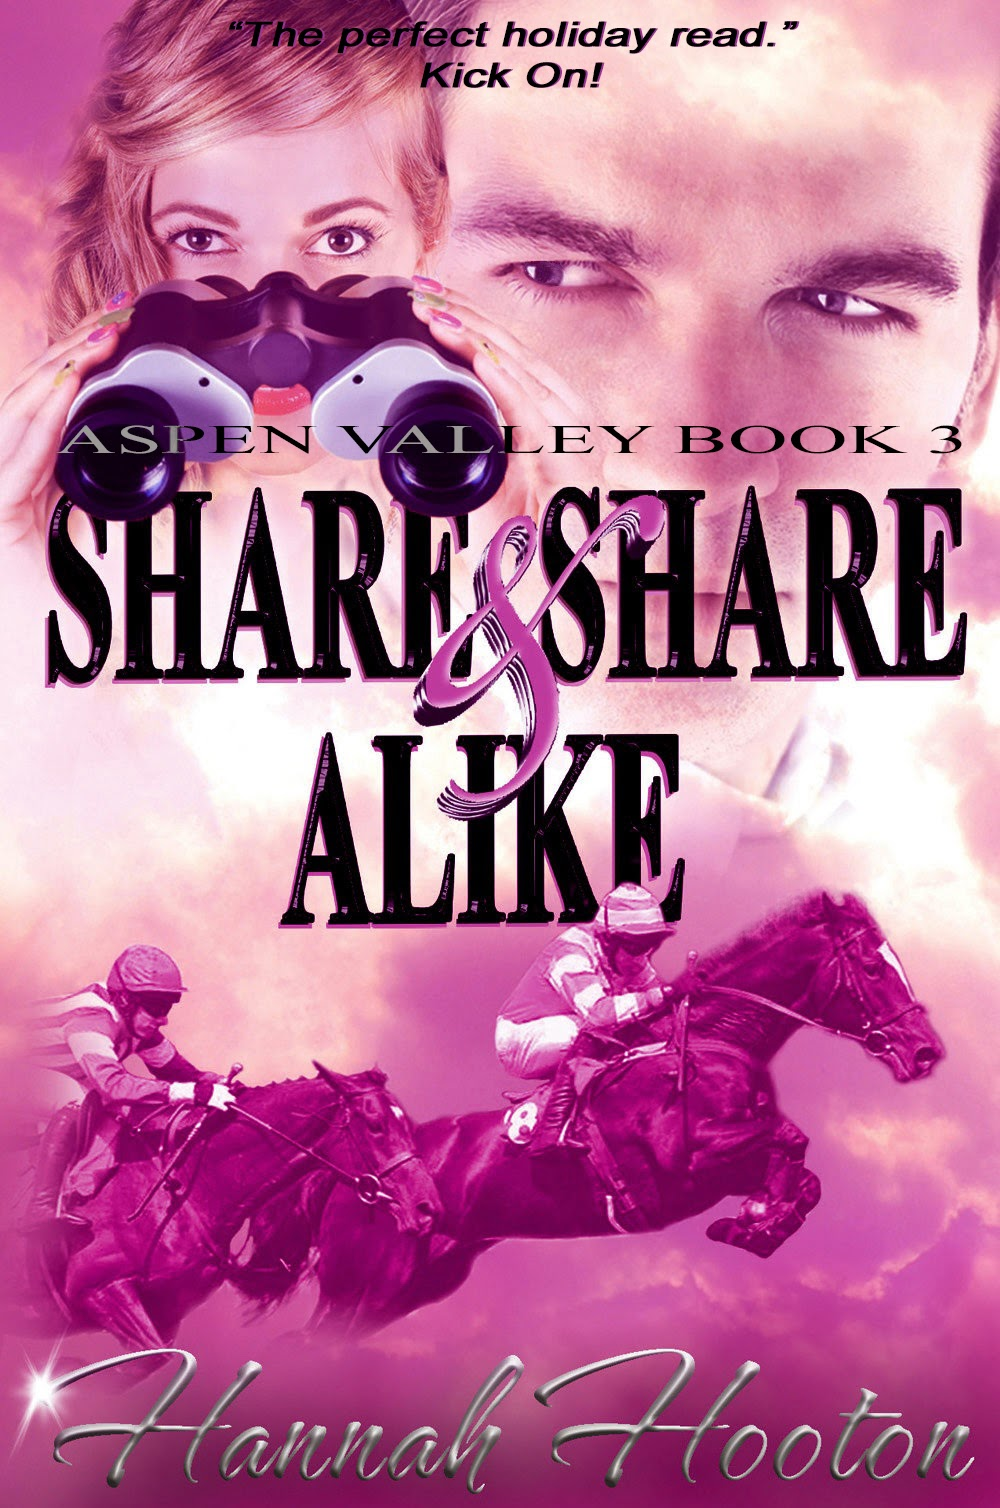 Share and Share Alike Chapter 1